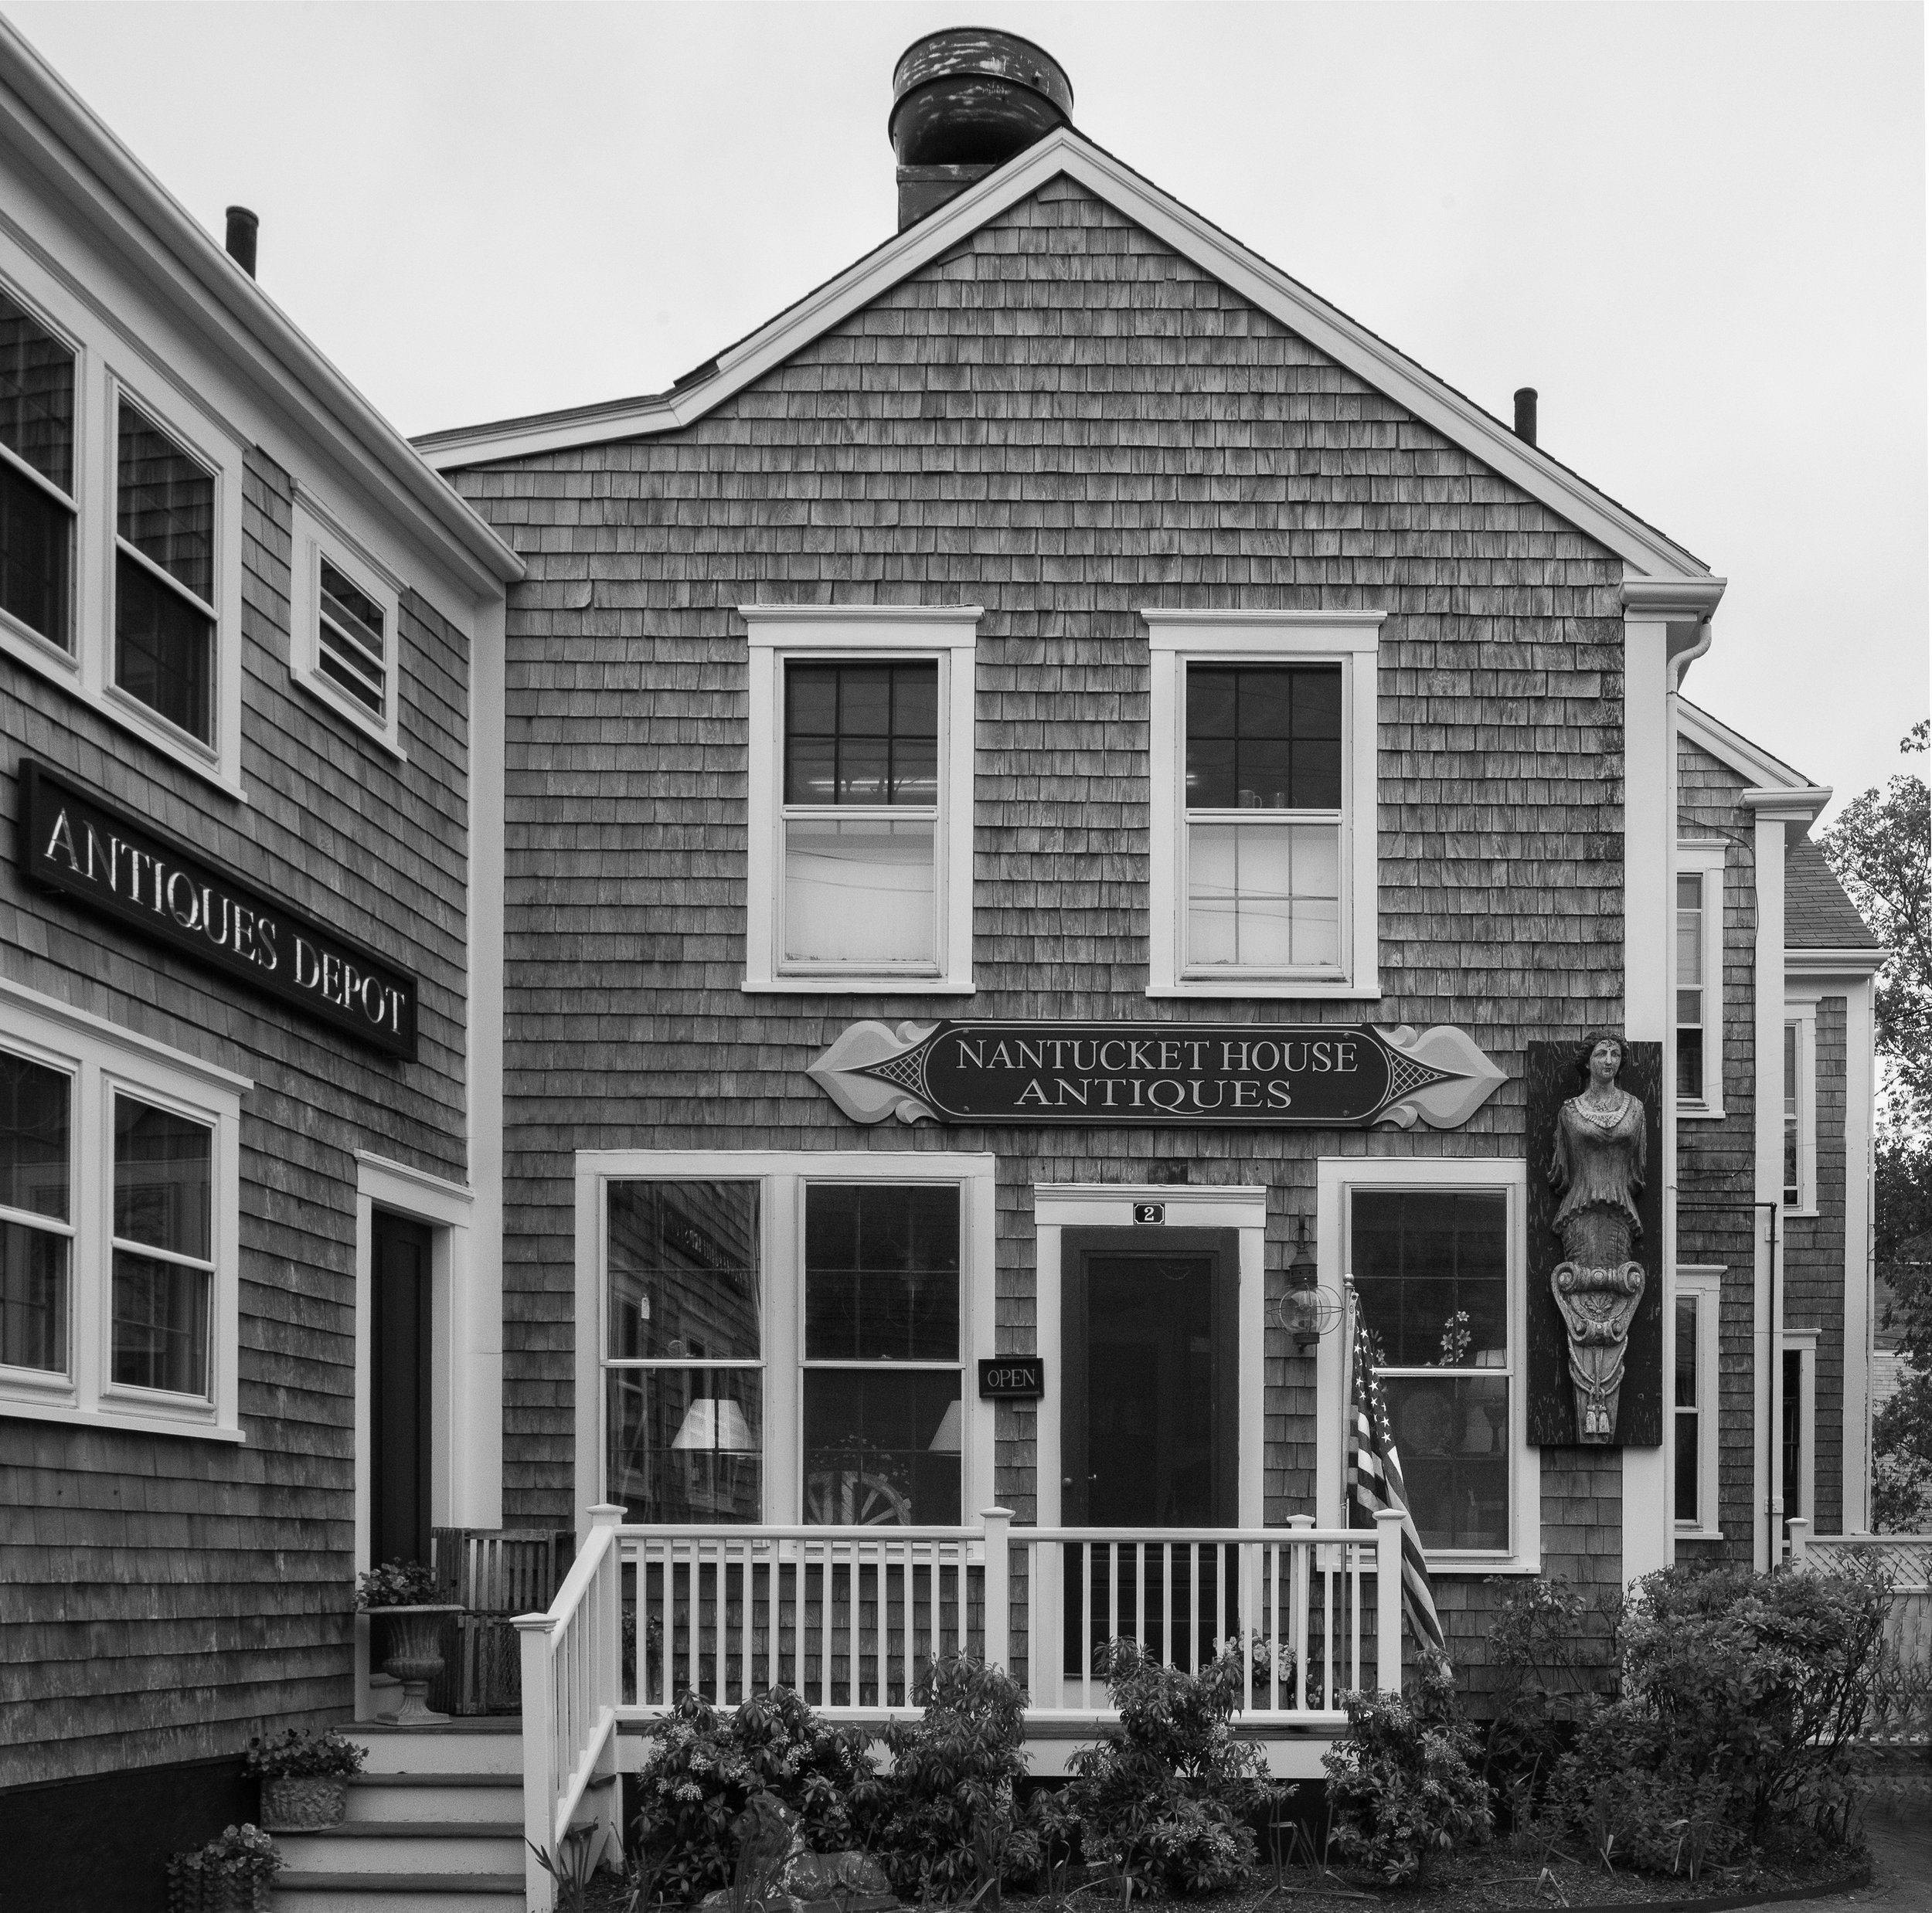 Nantucket House Antiques Store Exterior